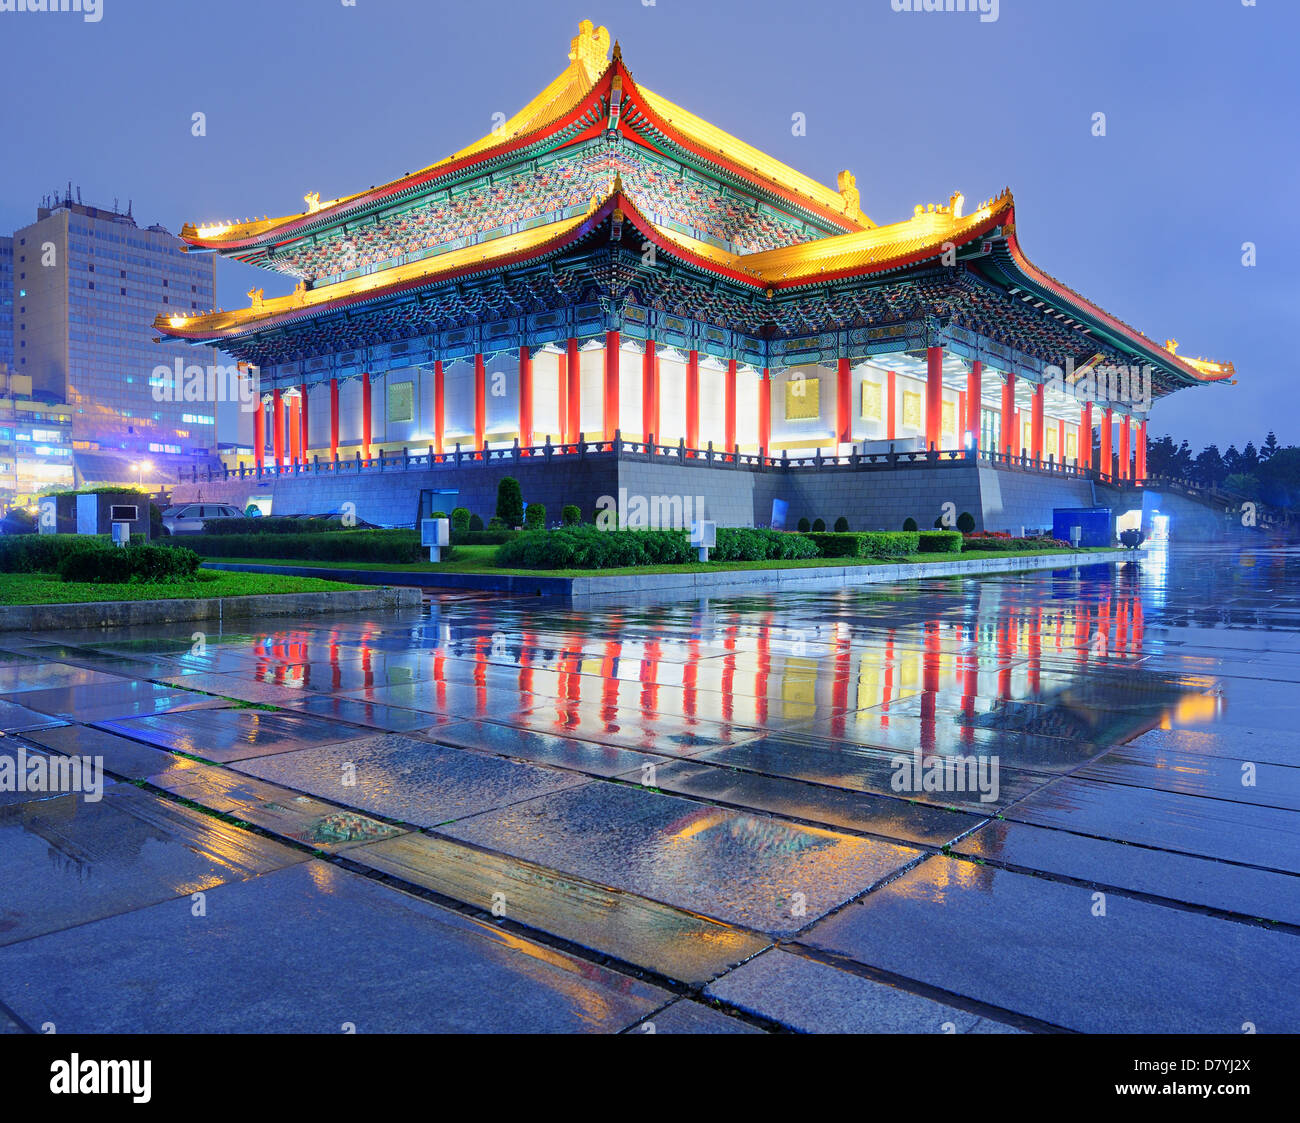 National Theater of Taiwan in Liberty Square, Taipei, Taiwan. - Stock Image